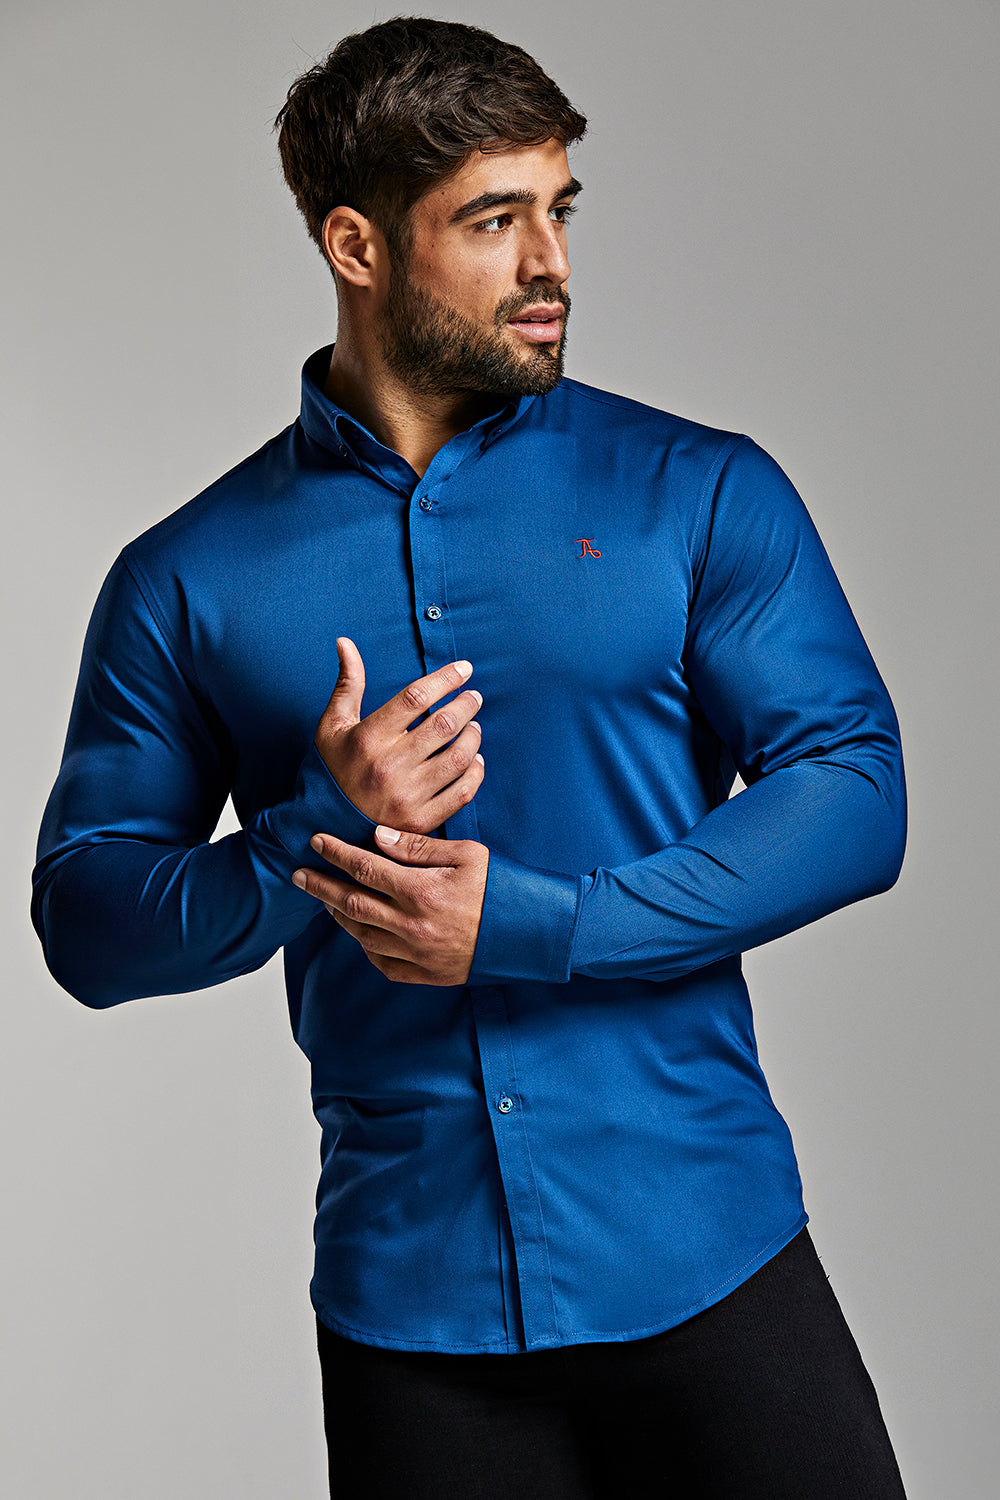 Bamboo Signature Shirt (Limited Edition) in Royal Blue